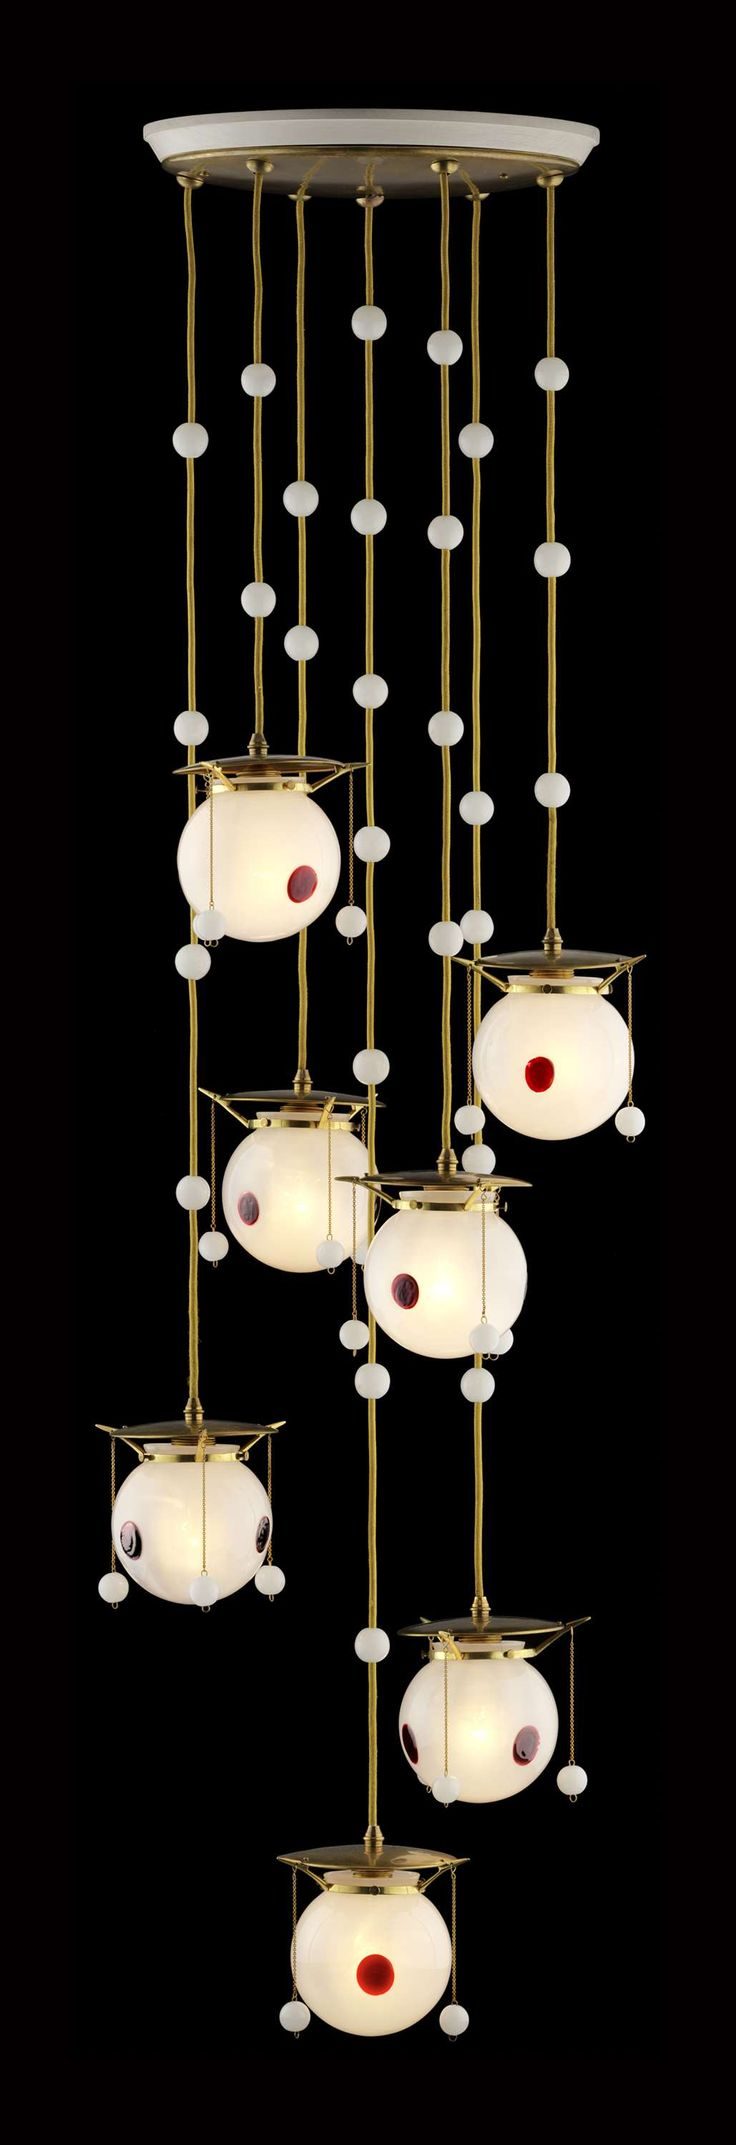 ** Koloman Moser Hanging chandelier  1905 Glass and brass